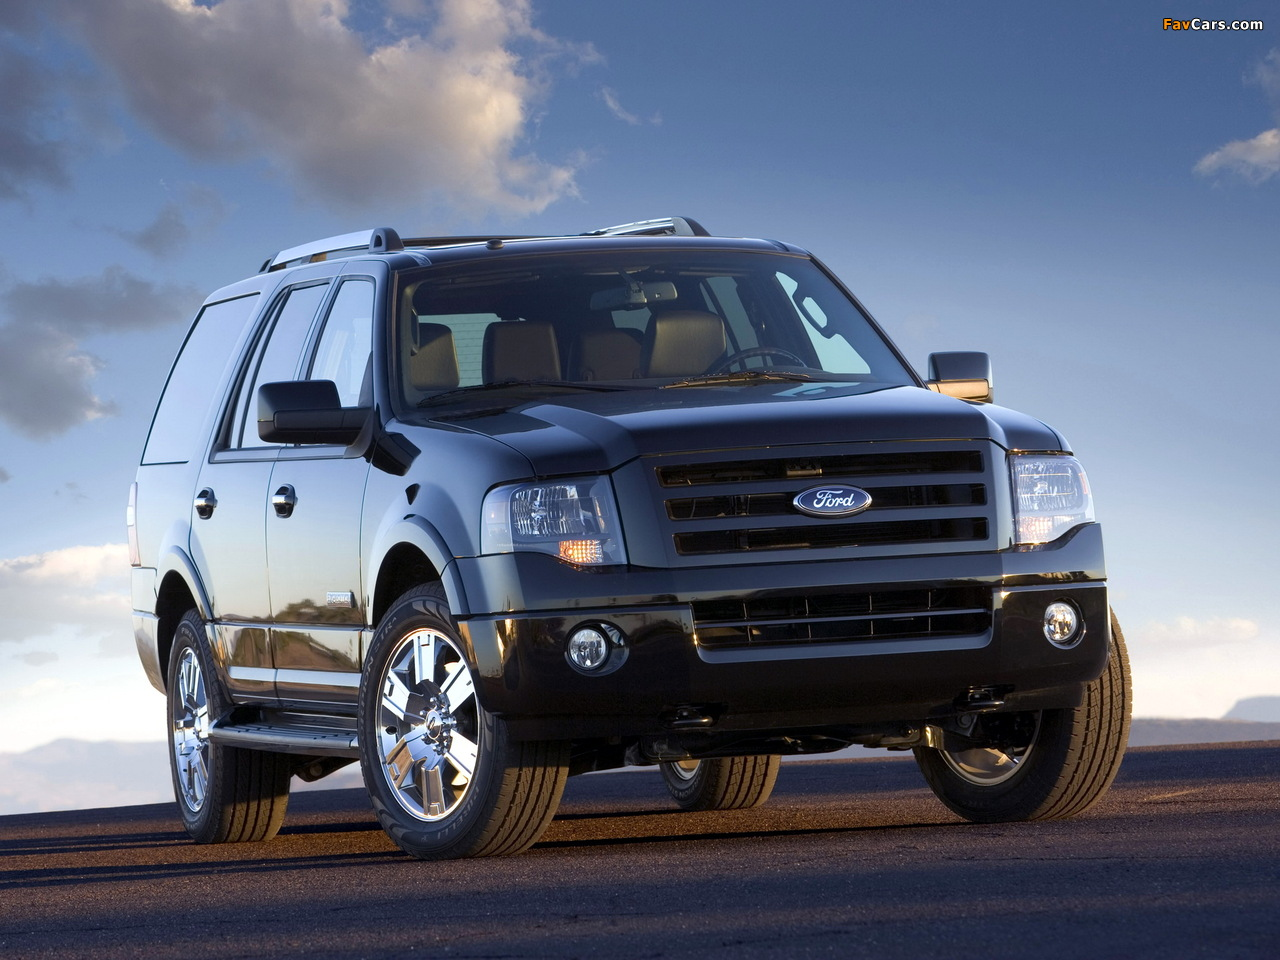 Ford Expedition Limited (U324) 2006 images (1280x960)